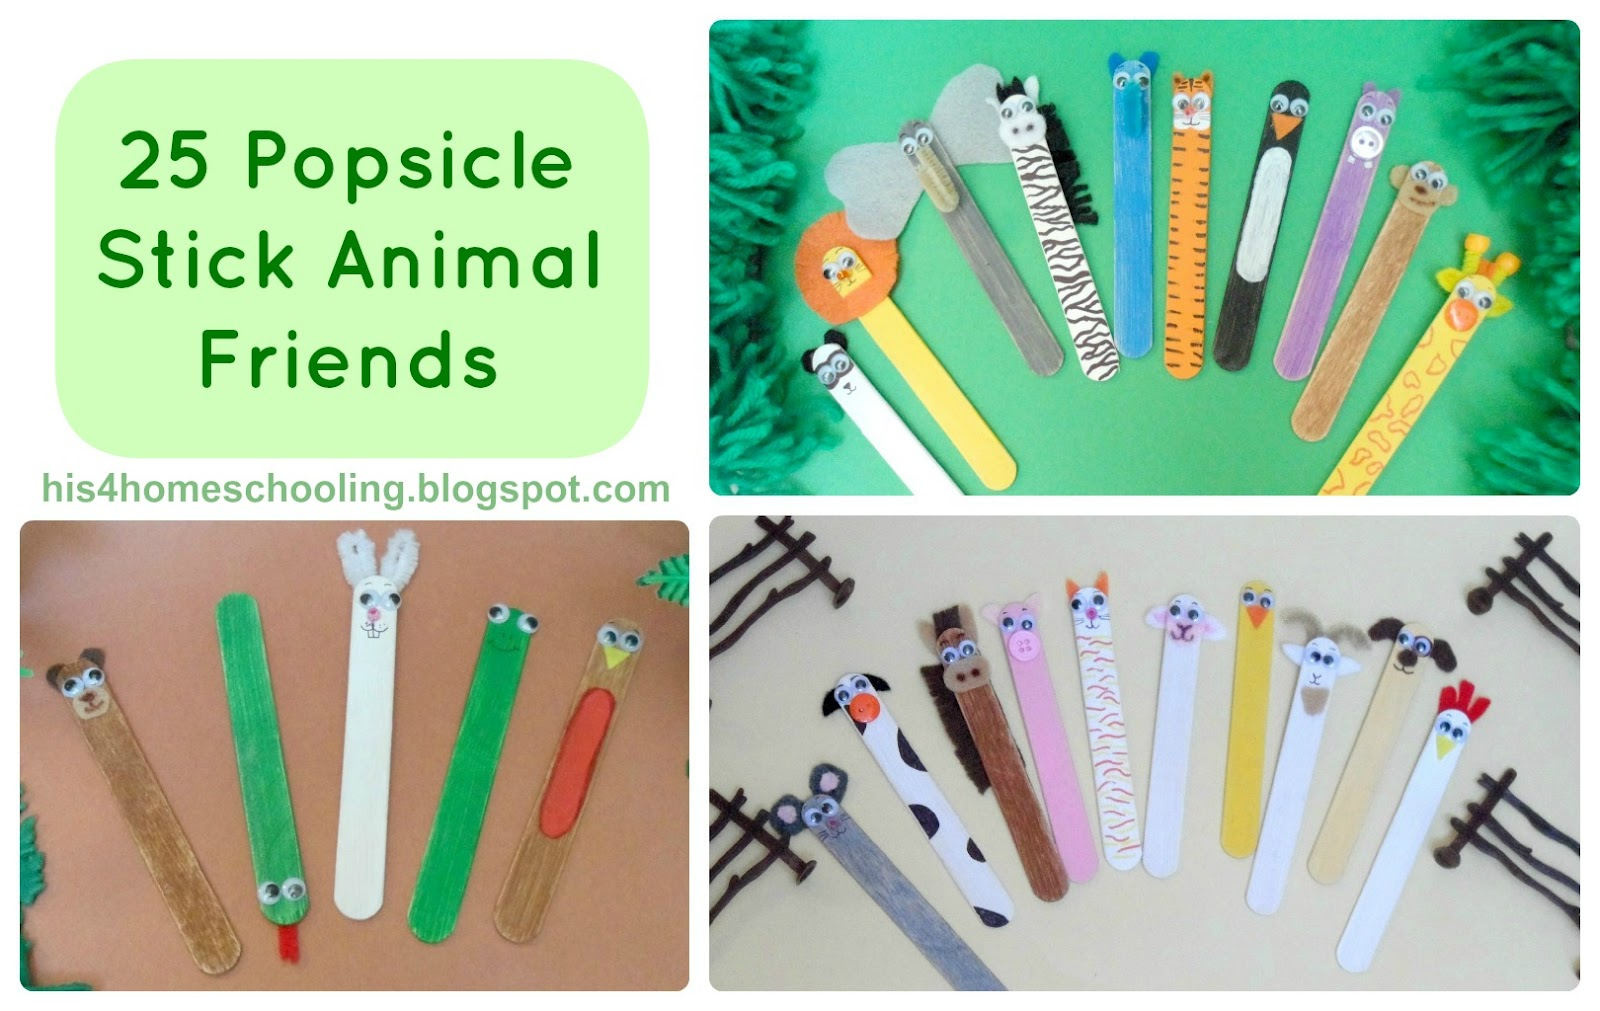 is for Homeschooling: 25 Popsicle Stick Animal Friends